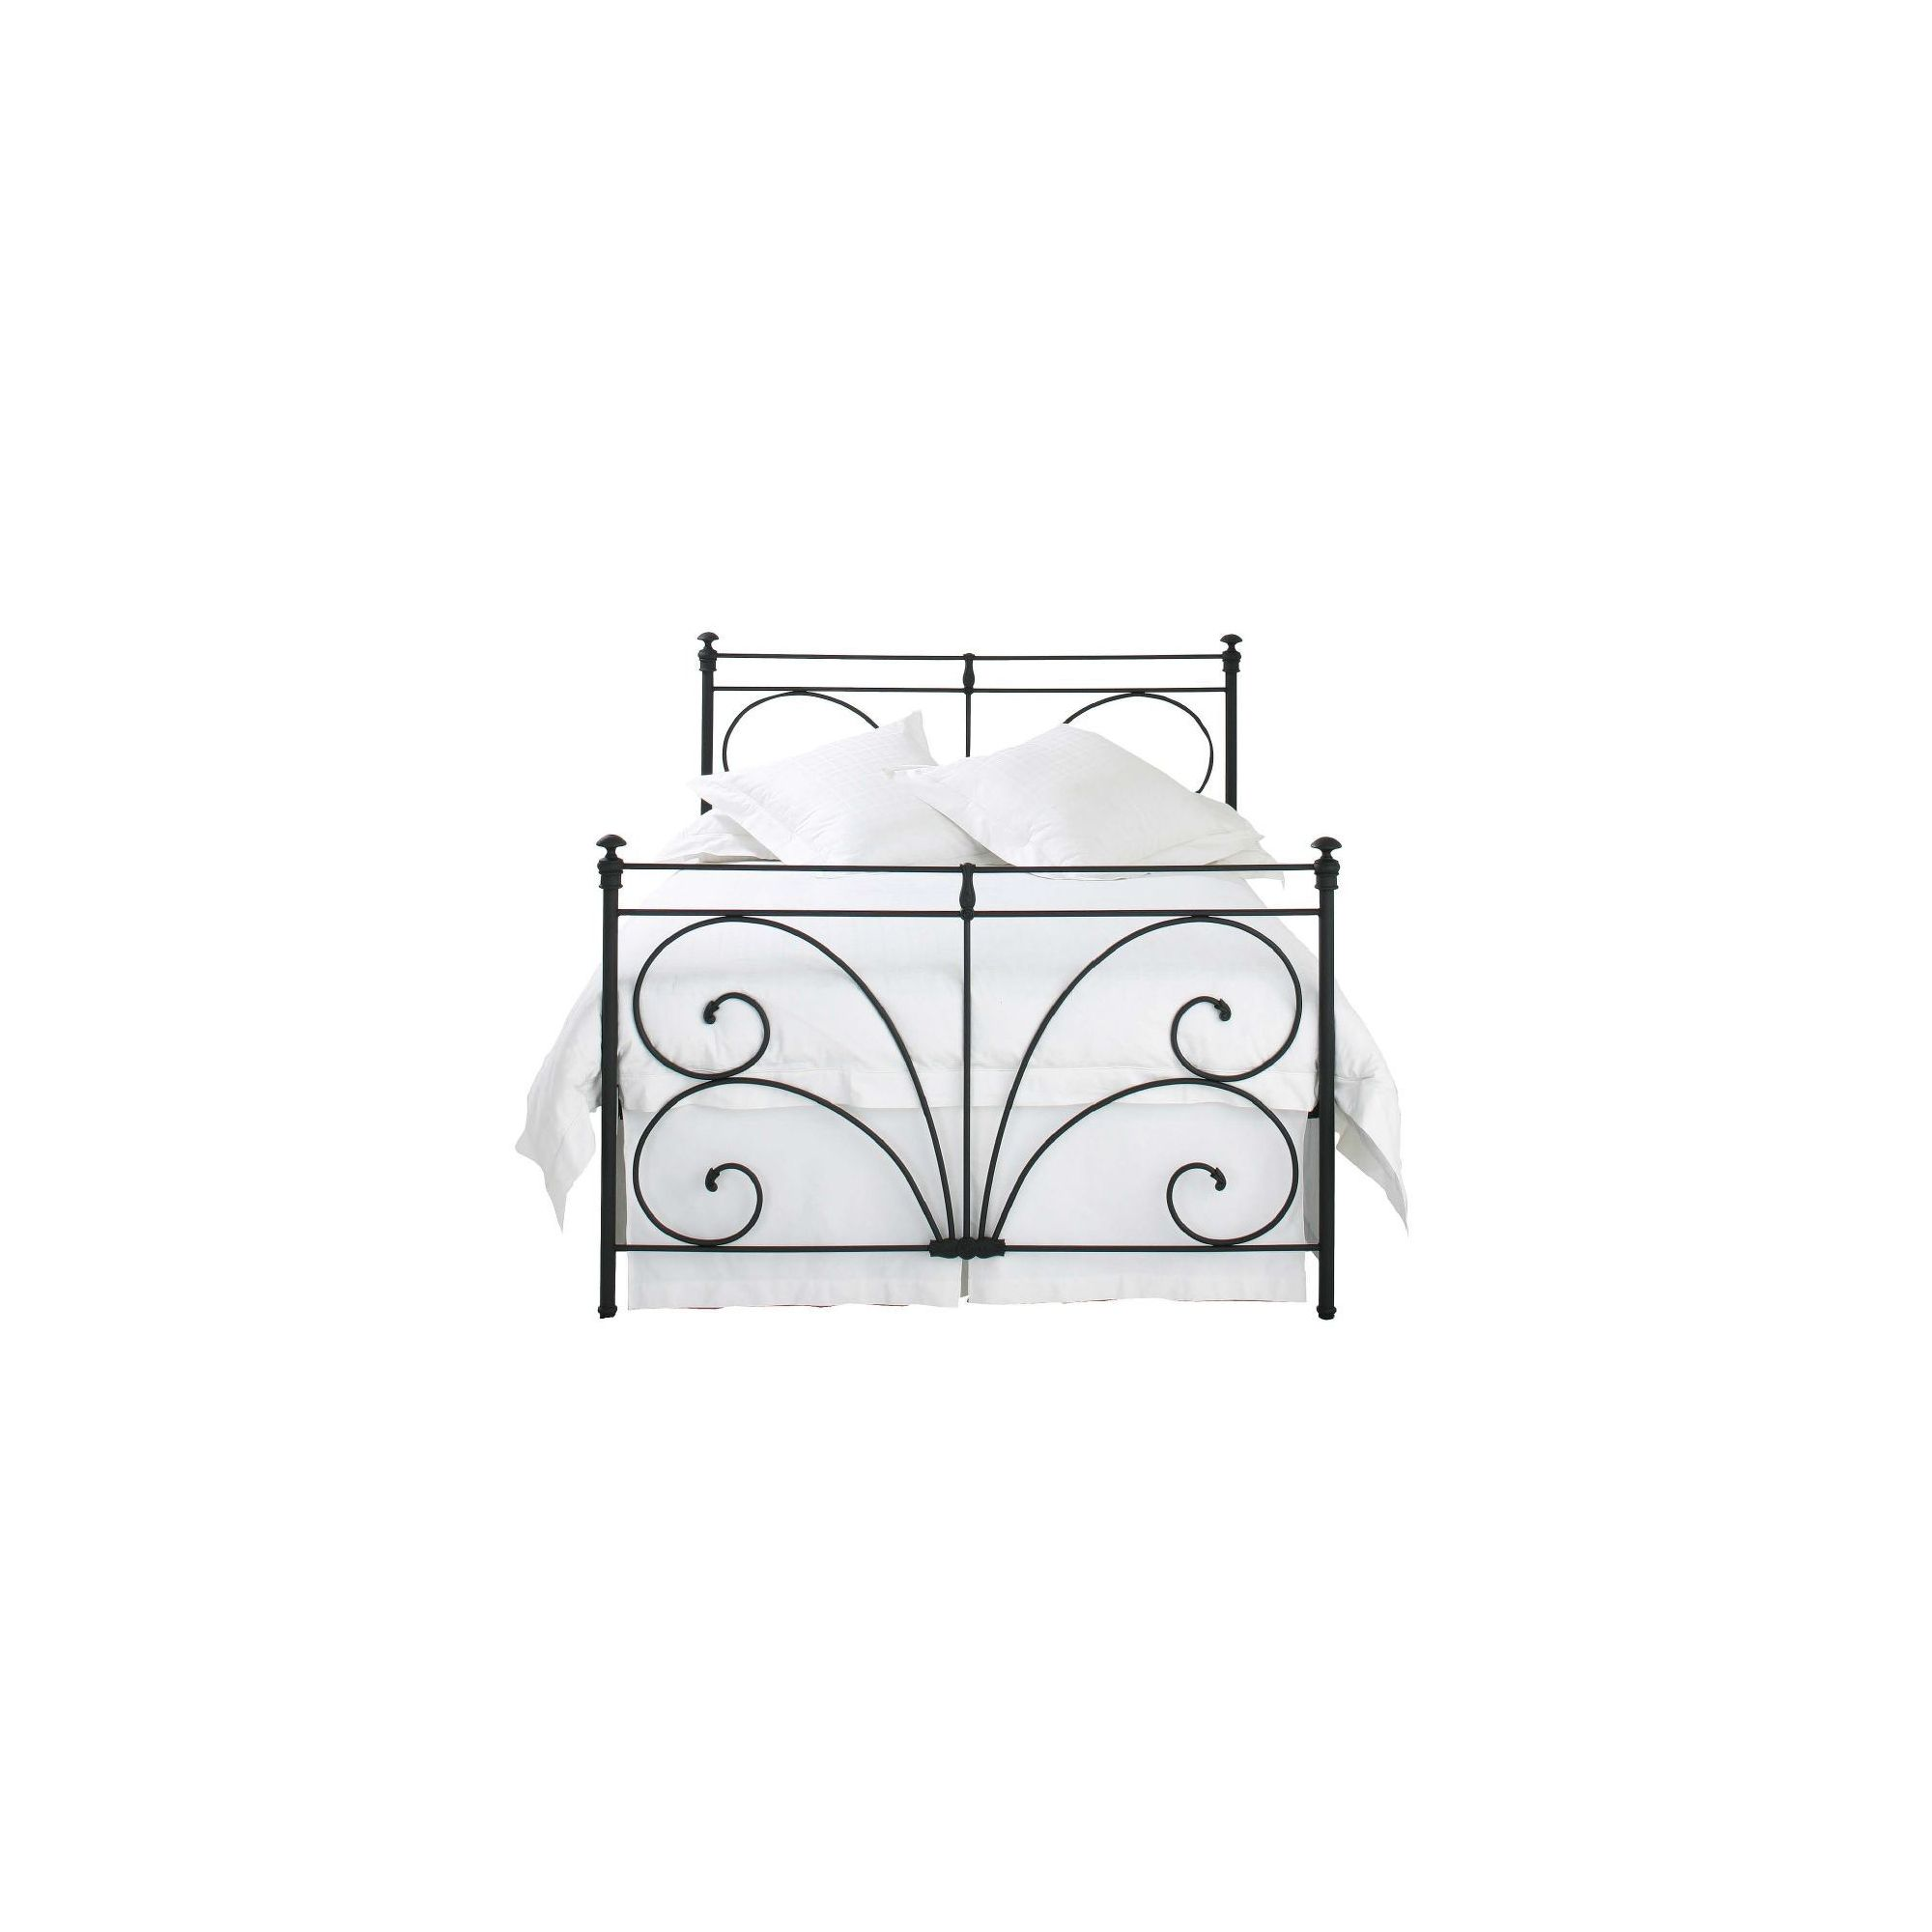 OBC Errol Bed Frame - Double - Glossy Ivory at Tesco Direct